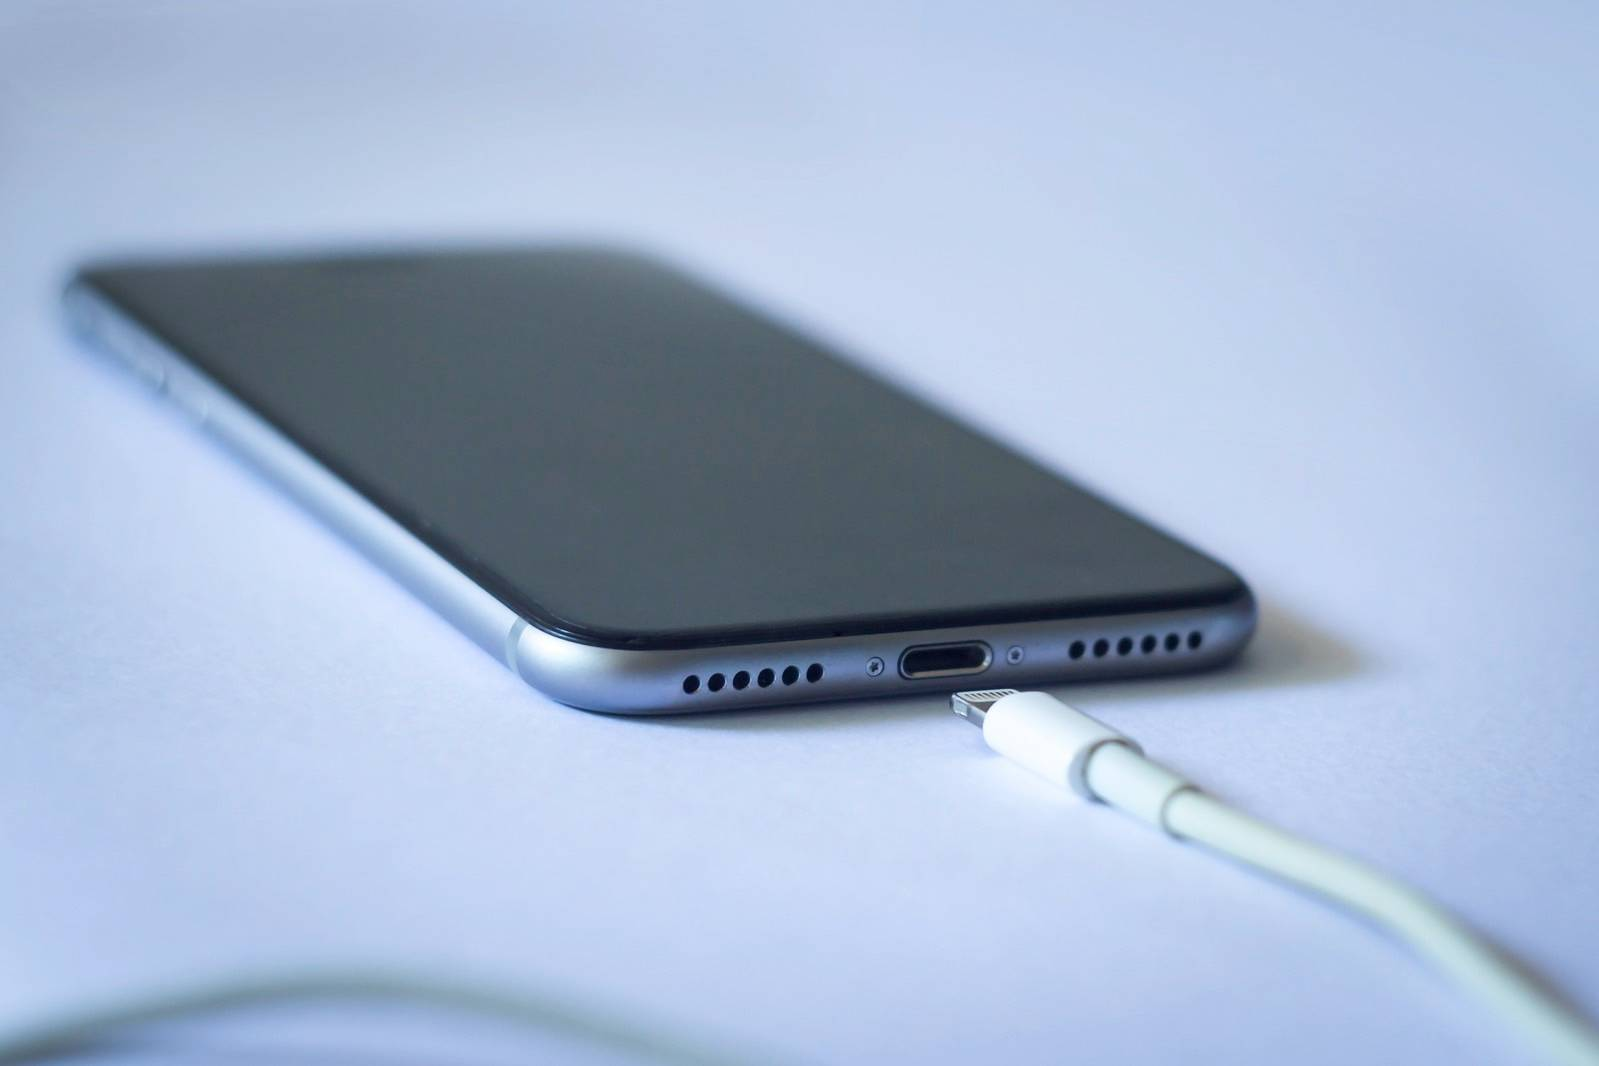 Apple iPhone 13 series speculated to get support for 25W fast charging